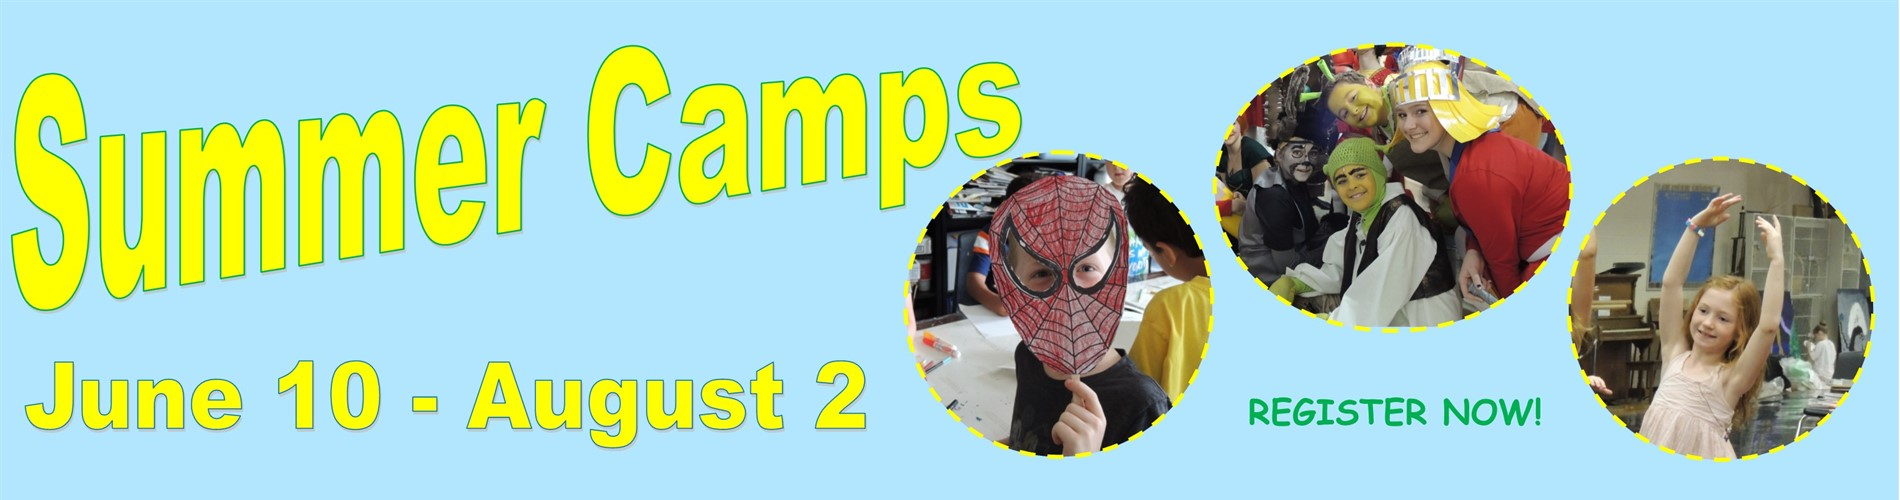 Summer camp banner with young campers dressed up as spider man, shrek and friends and a dancer